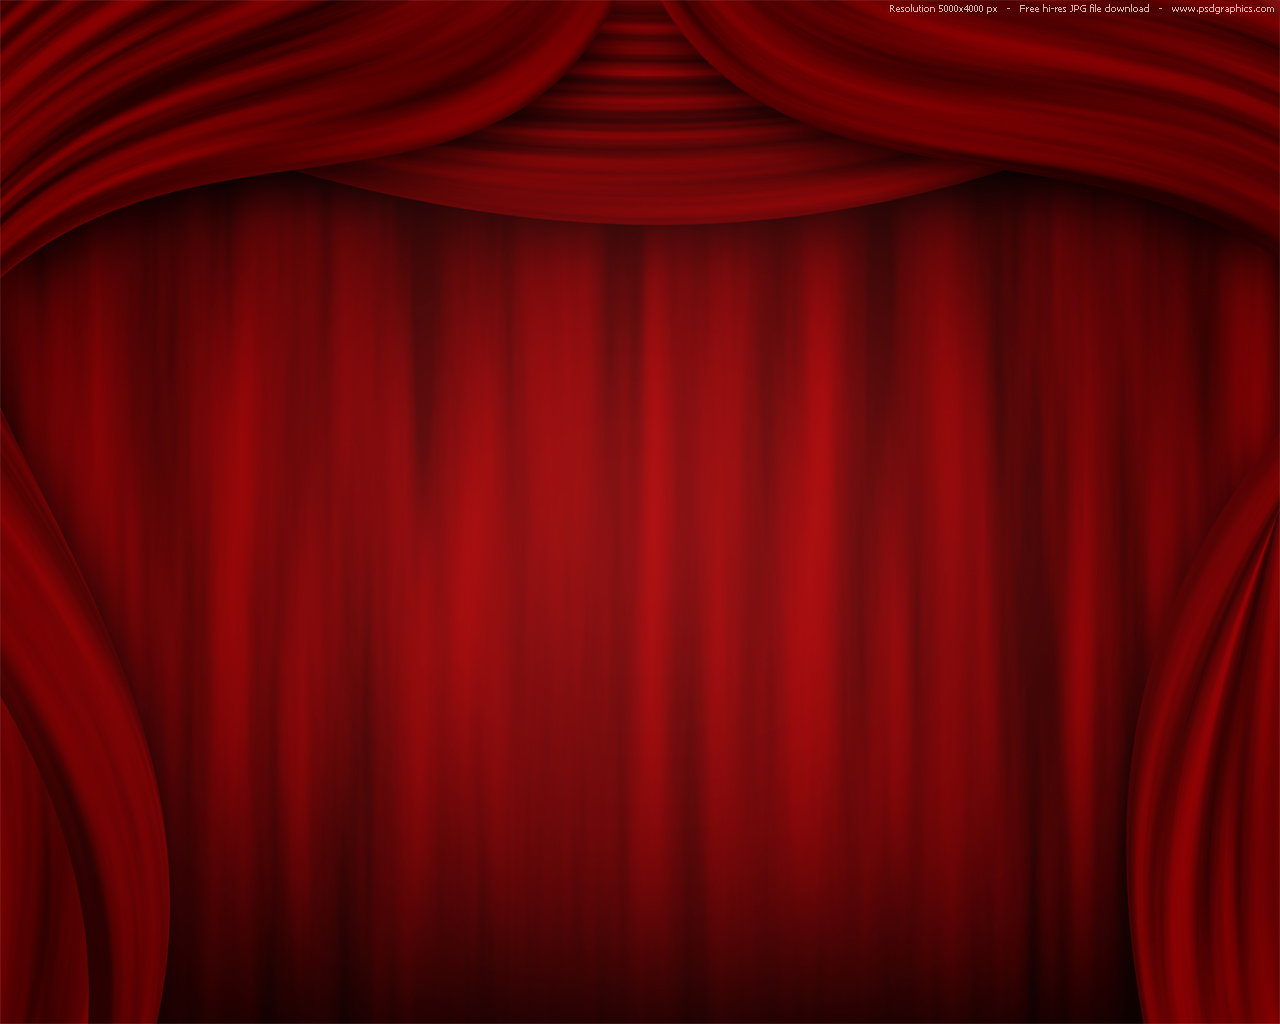 Theater Curtain PPT Backgrounds